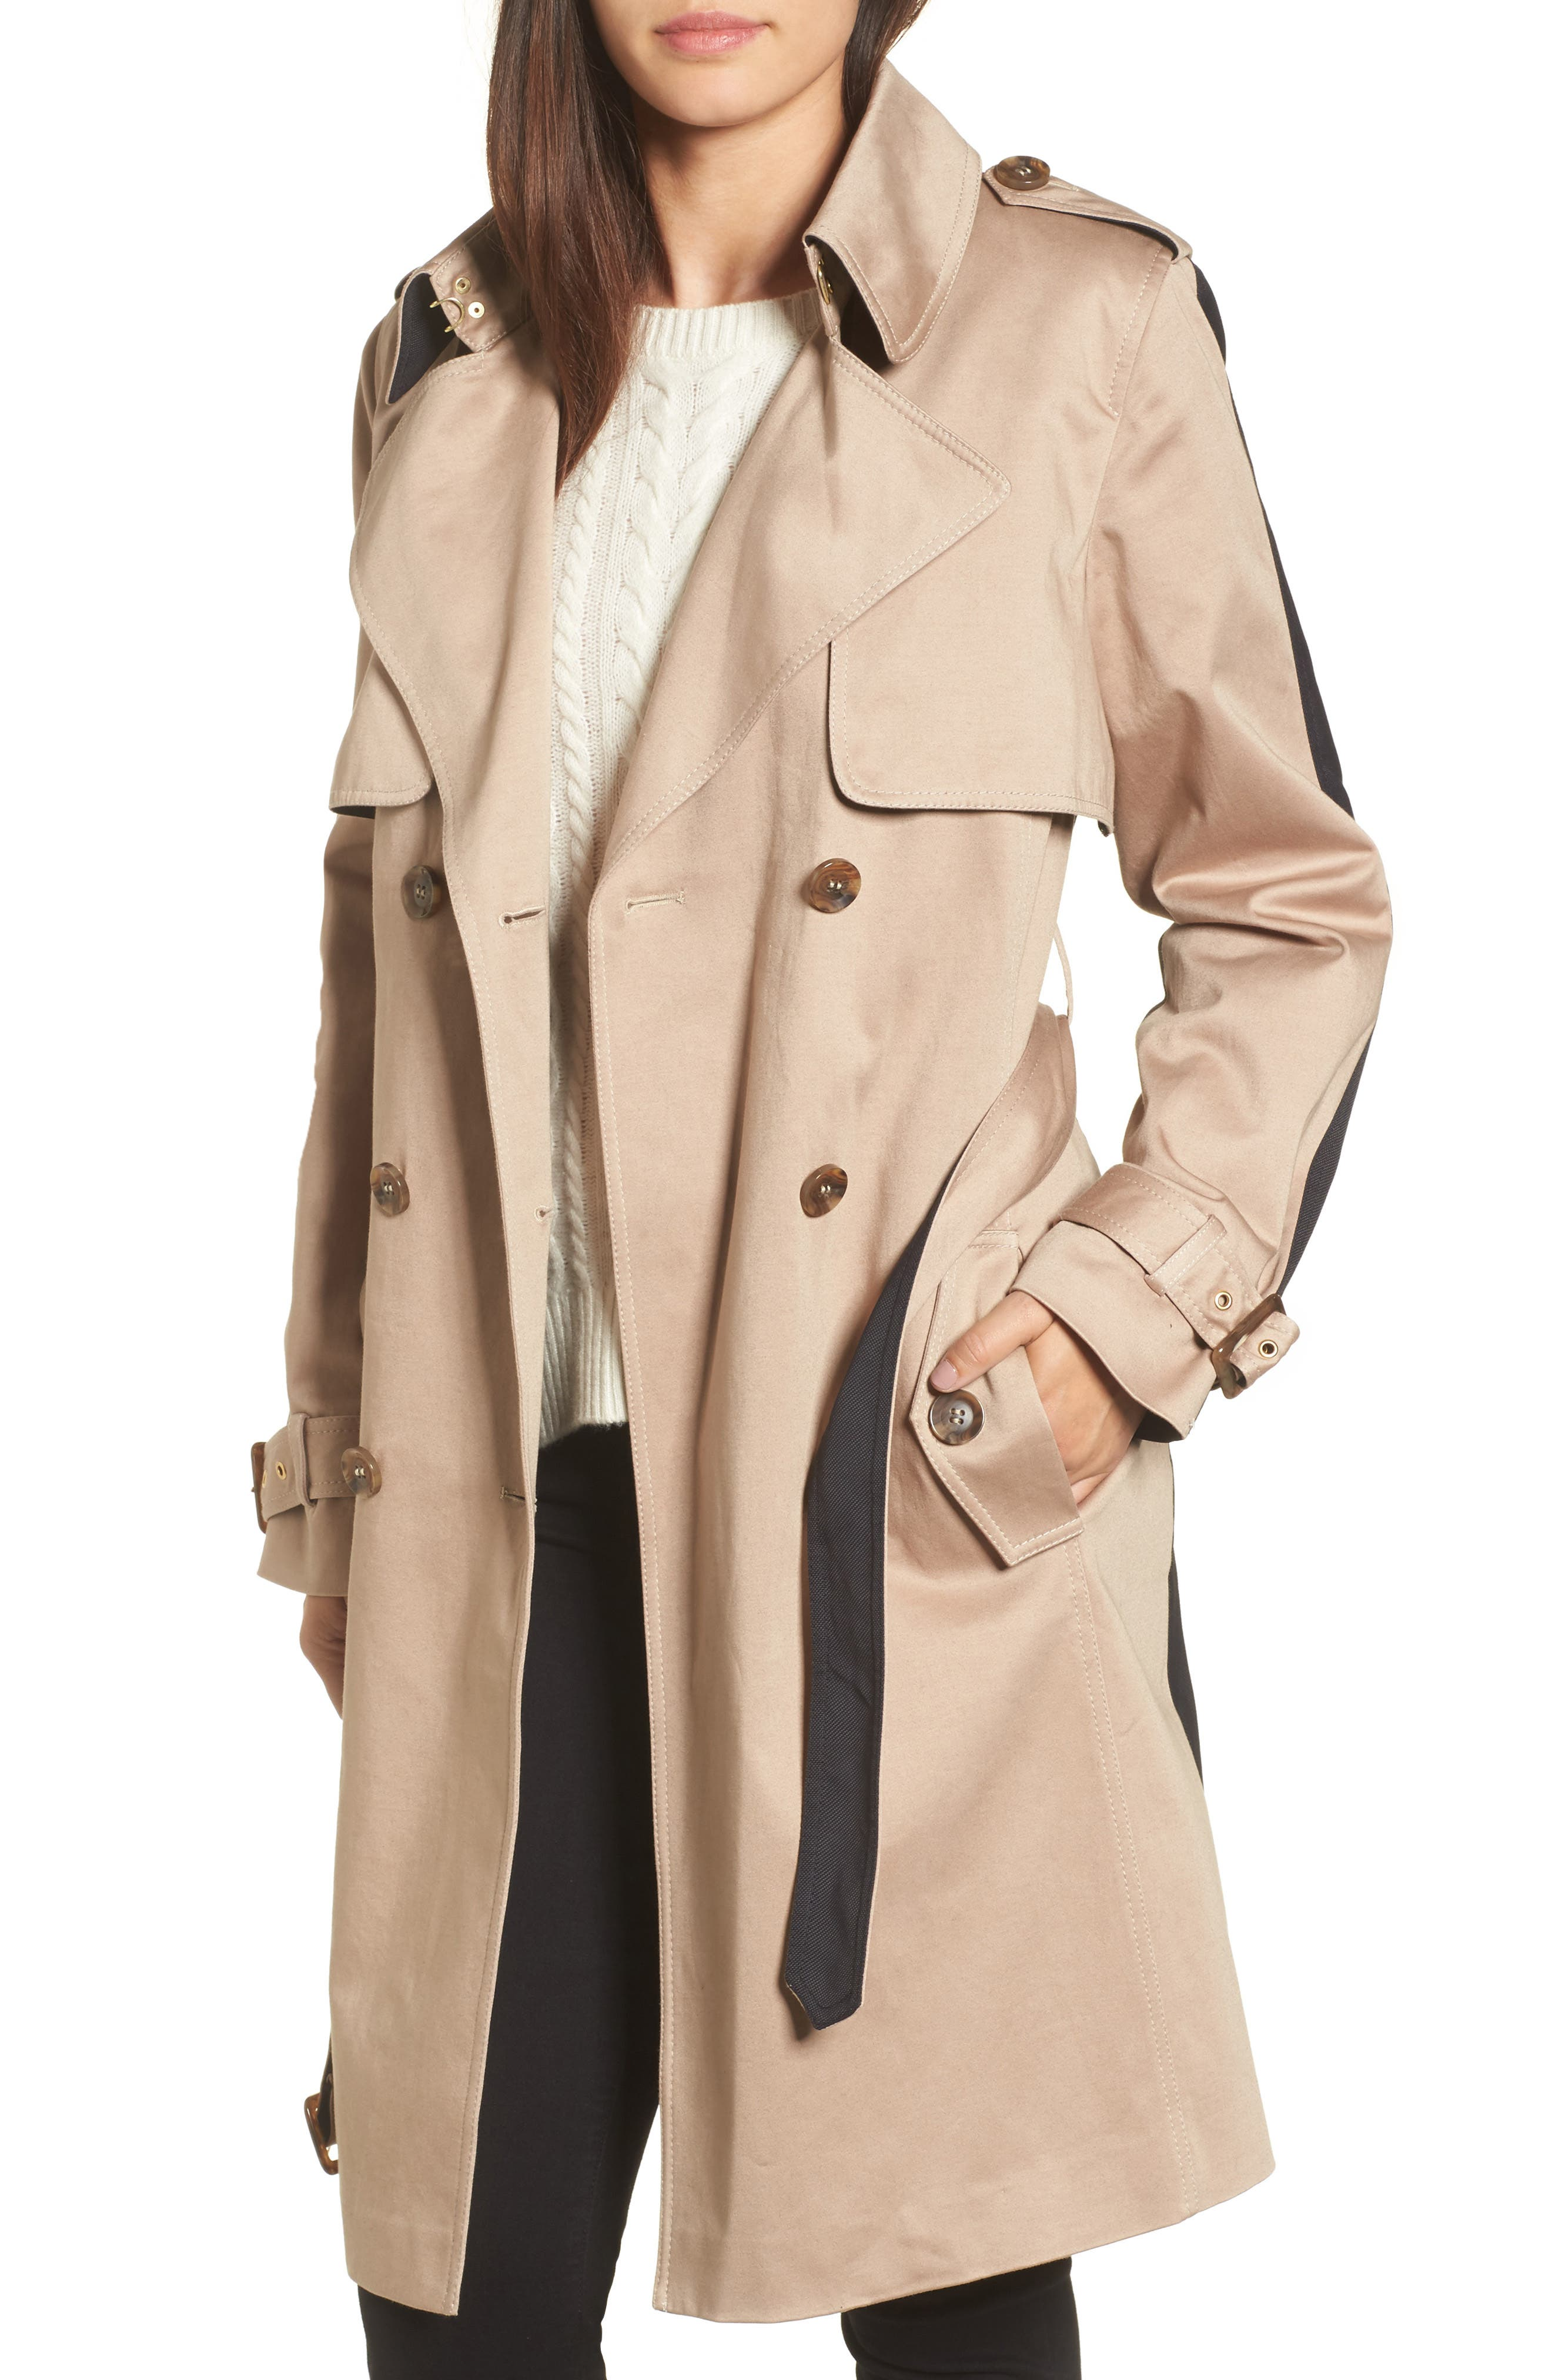 Allison Two-Tone Trench Coat,                             Main thumbnail 1, color,                             251